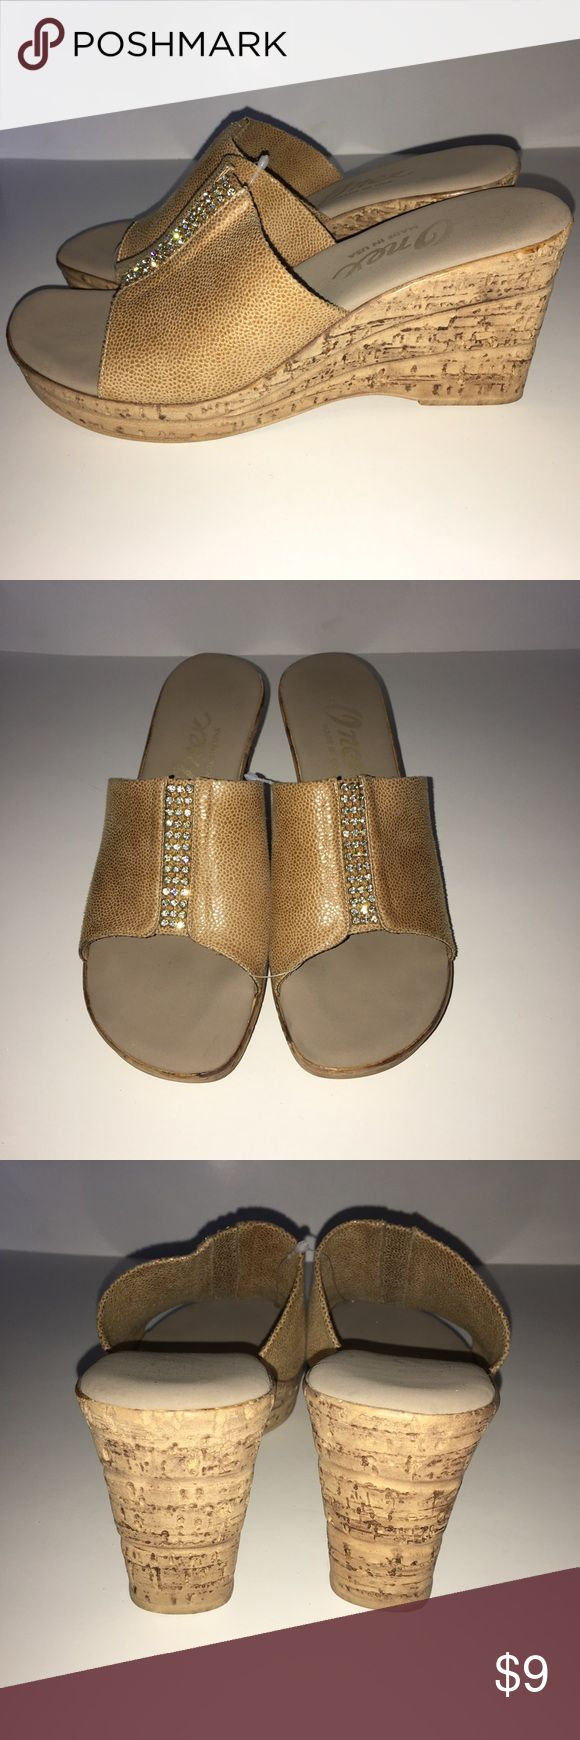 ✅2 for $15 Like New Beige Platforms Shoes are like new! Combine with any item with a ✅ for a $15 bundle or add three more items for 30% Off Bundles. onex Shoes Platforms